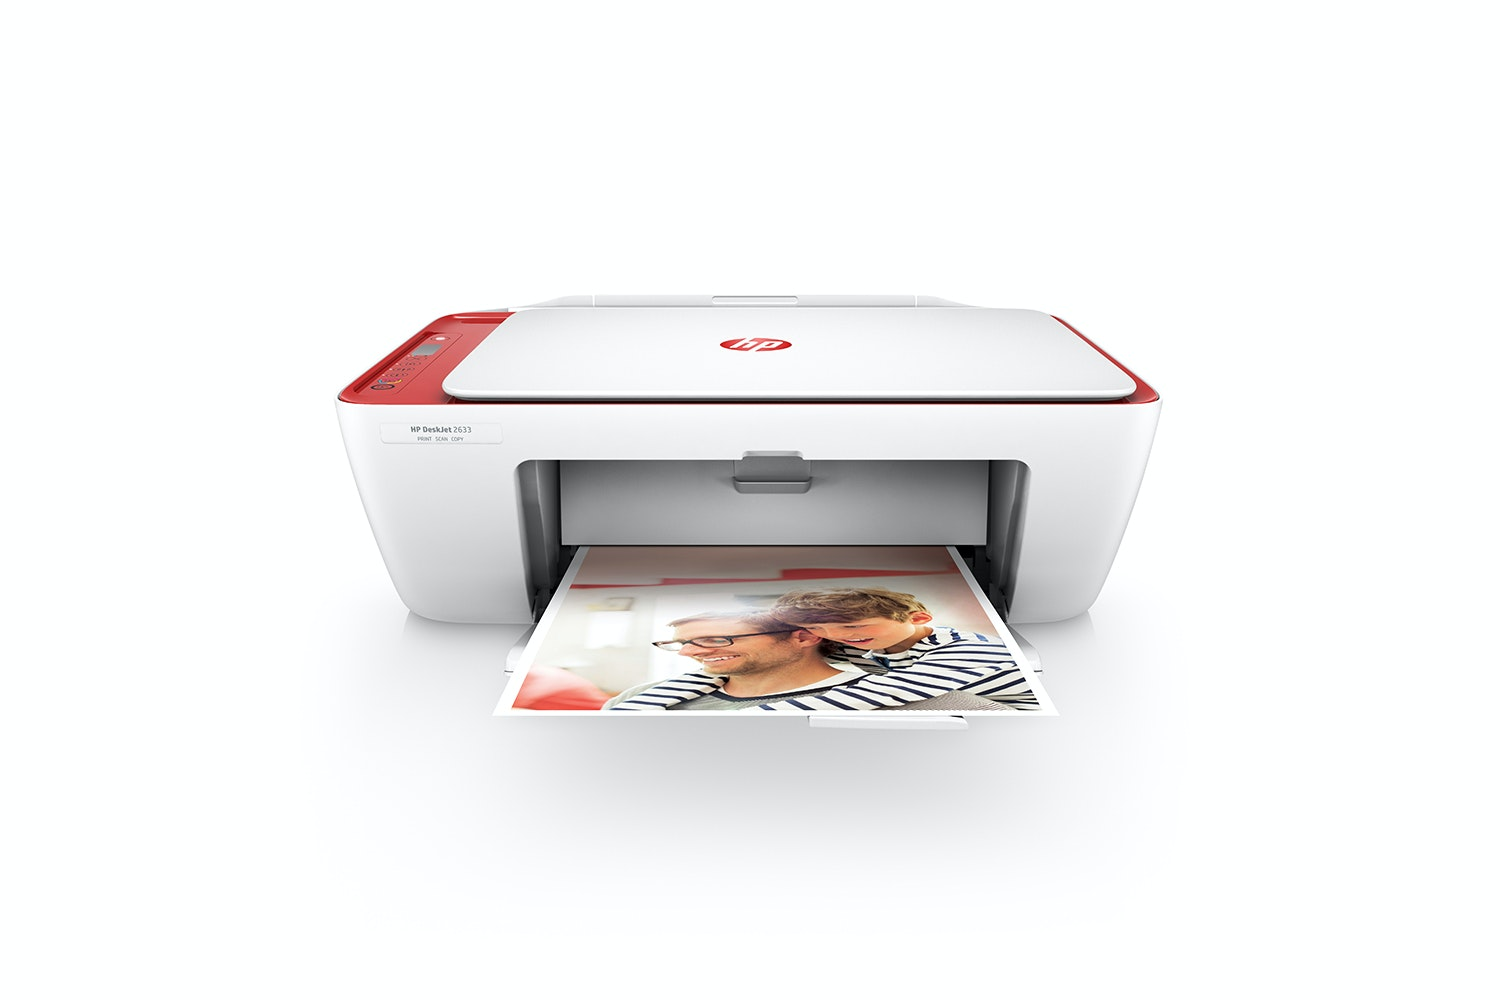 HP DeskJet 2633 Printer | Red